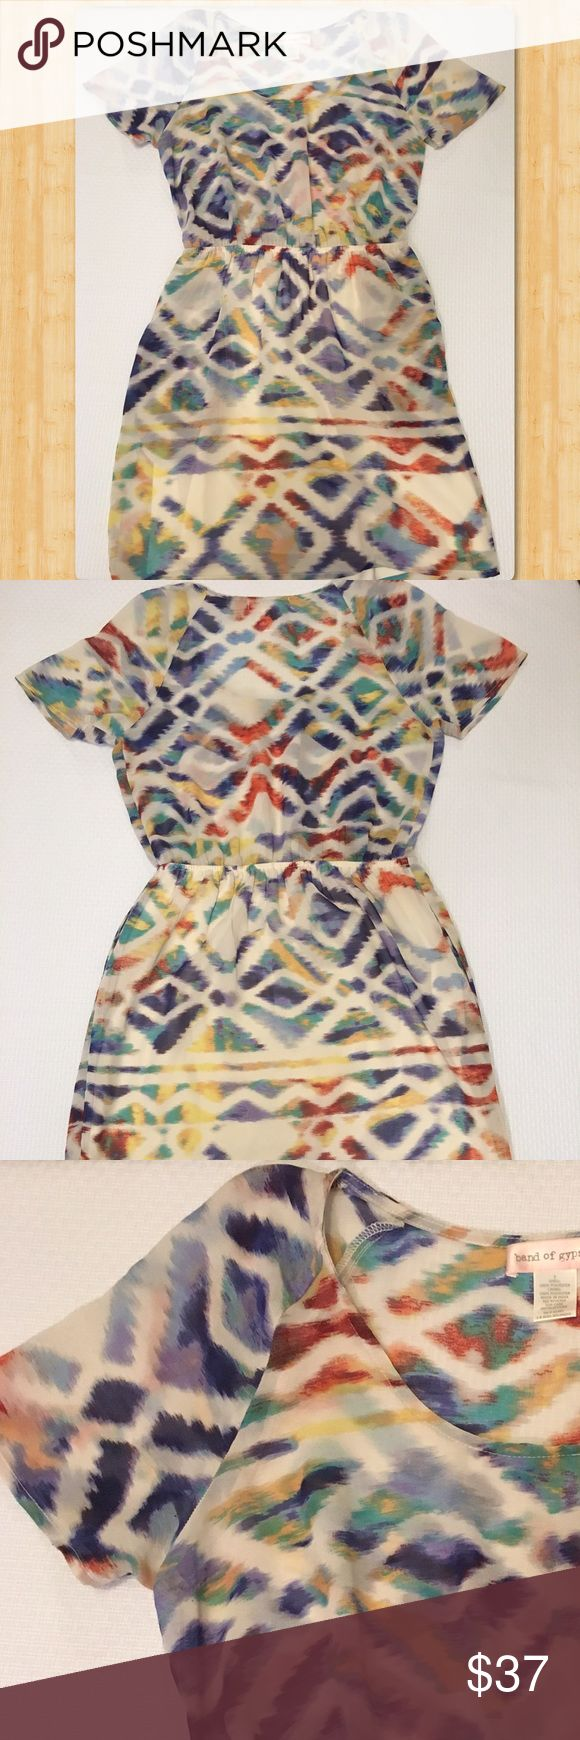 Multi color Band of Gypsies short sleeve dress Gorgeous multi color short sleeve band of gypsies dress.  The bottom is lined and the top is unlined so it's semi-sheer.  Elastic waist for comfortable fit. Band of Gypsies Dresses